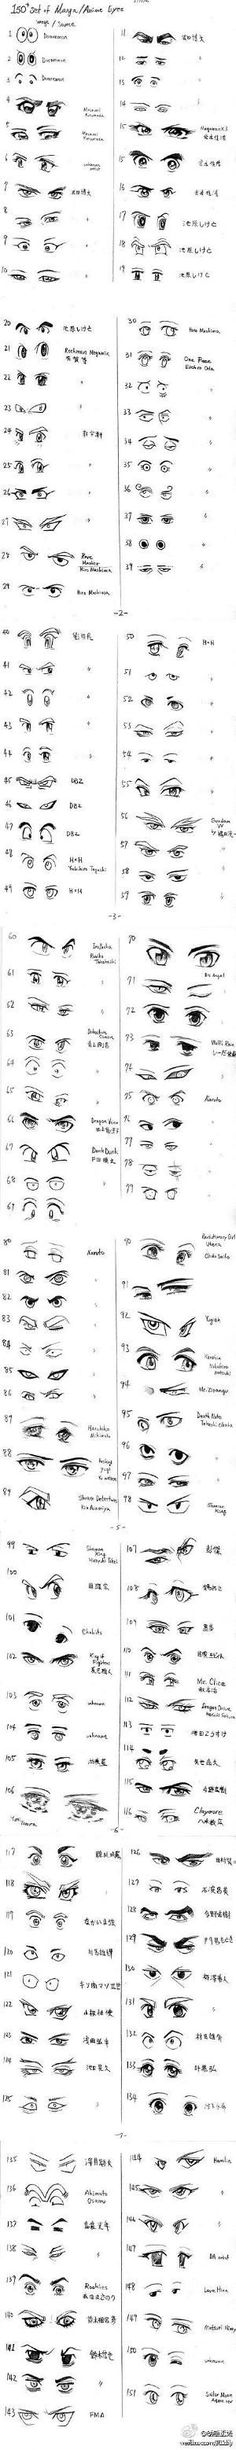 how to draw eyes by Denise Davis zcTg4